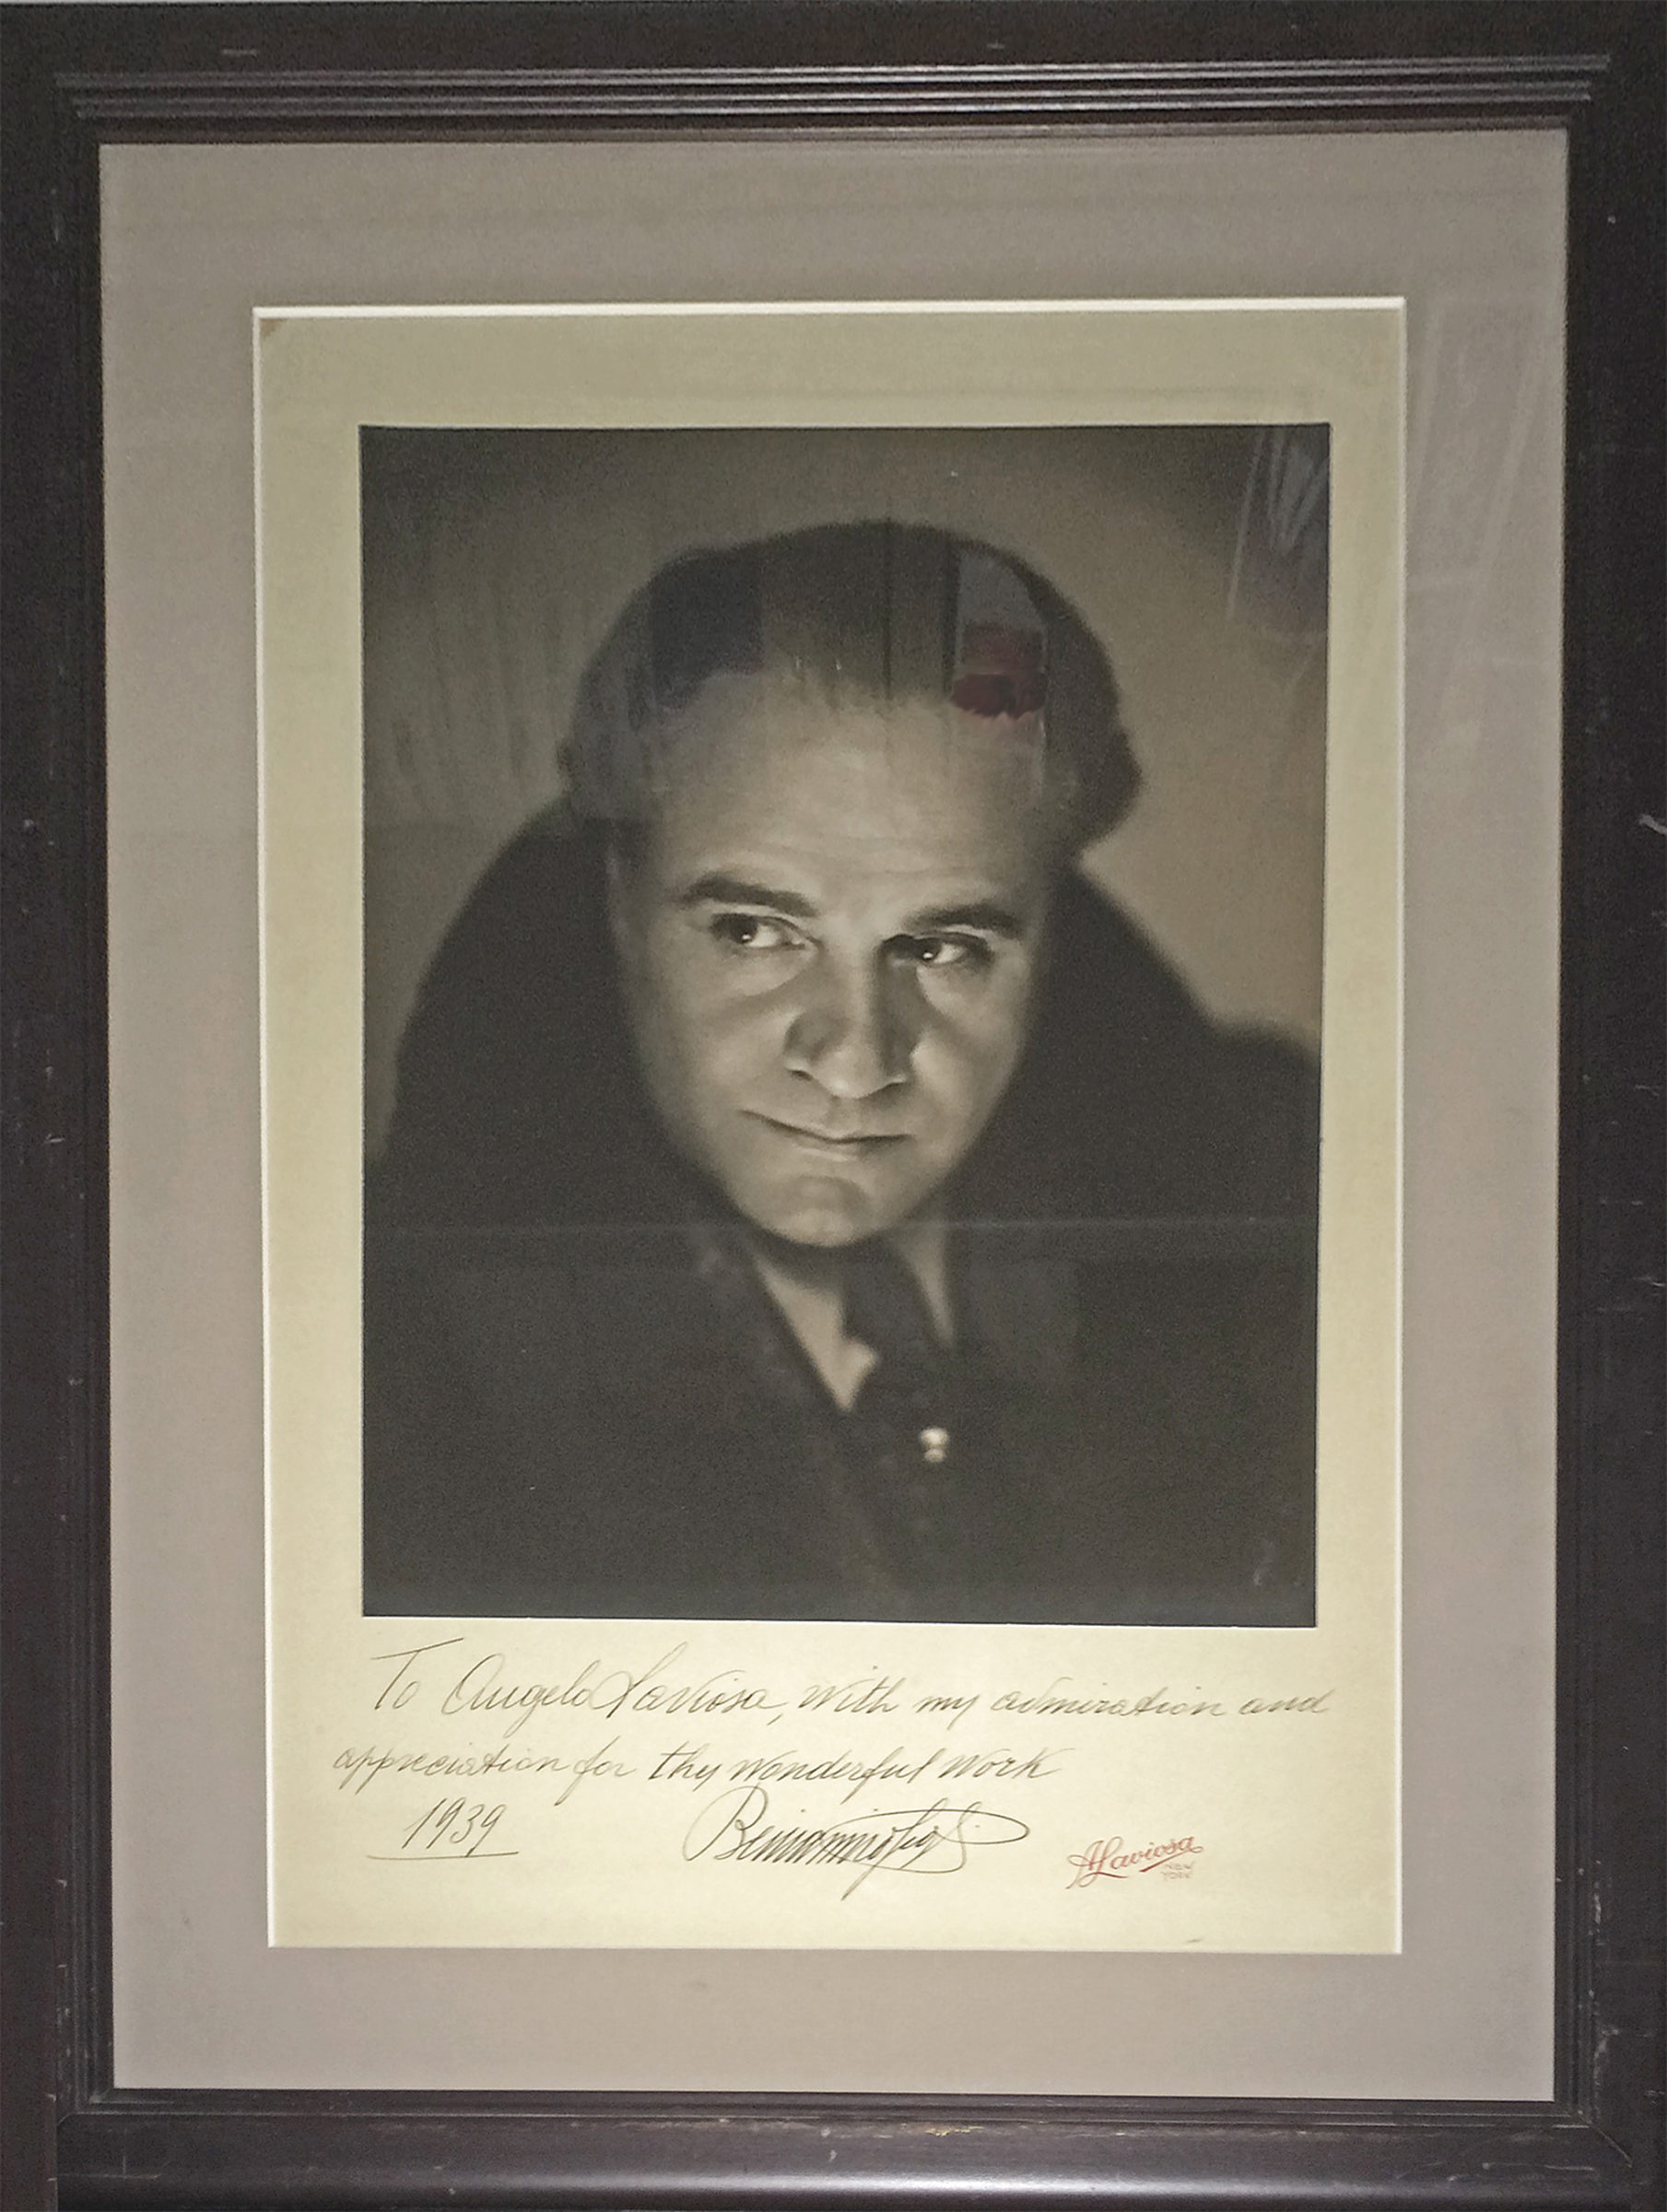 An Oversize and Magnificent Signed Photograph of the Italian Tenor Inscribed to the Photographer, Angelo Laviosa